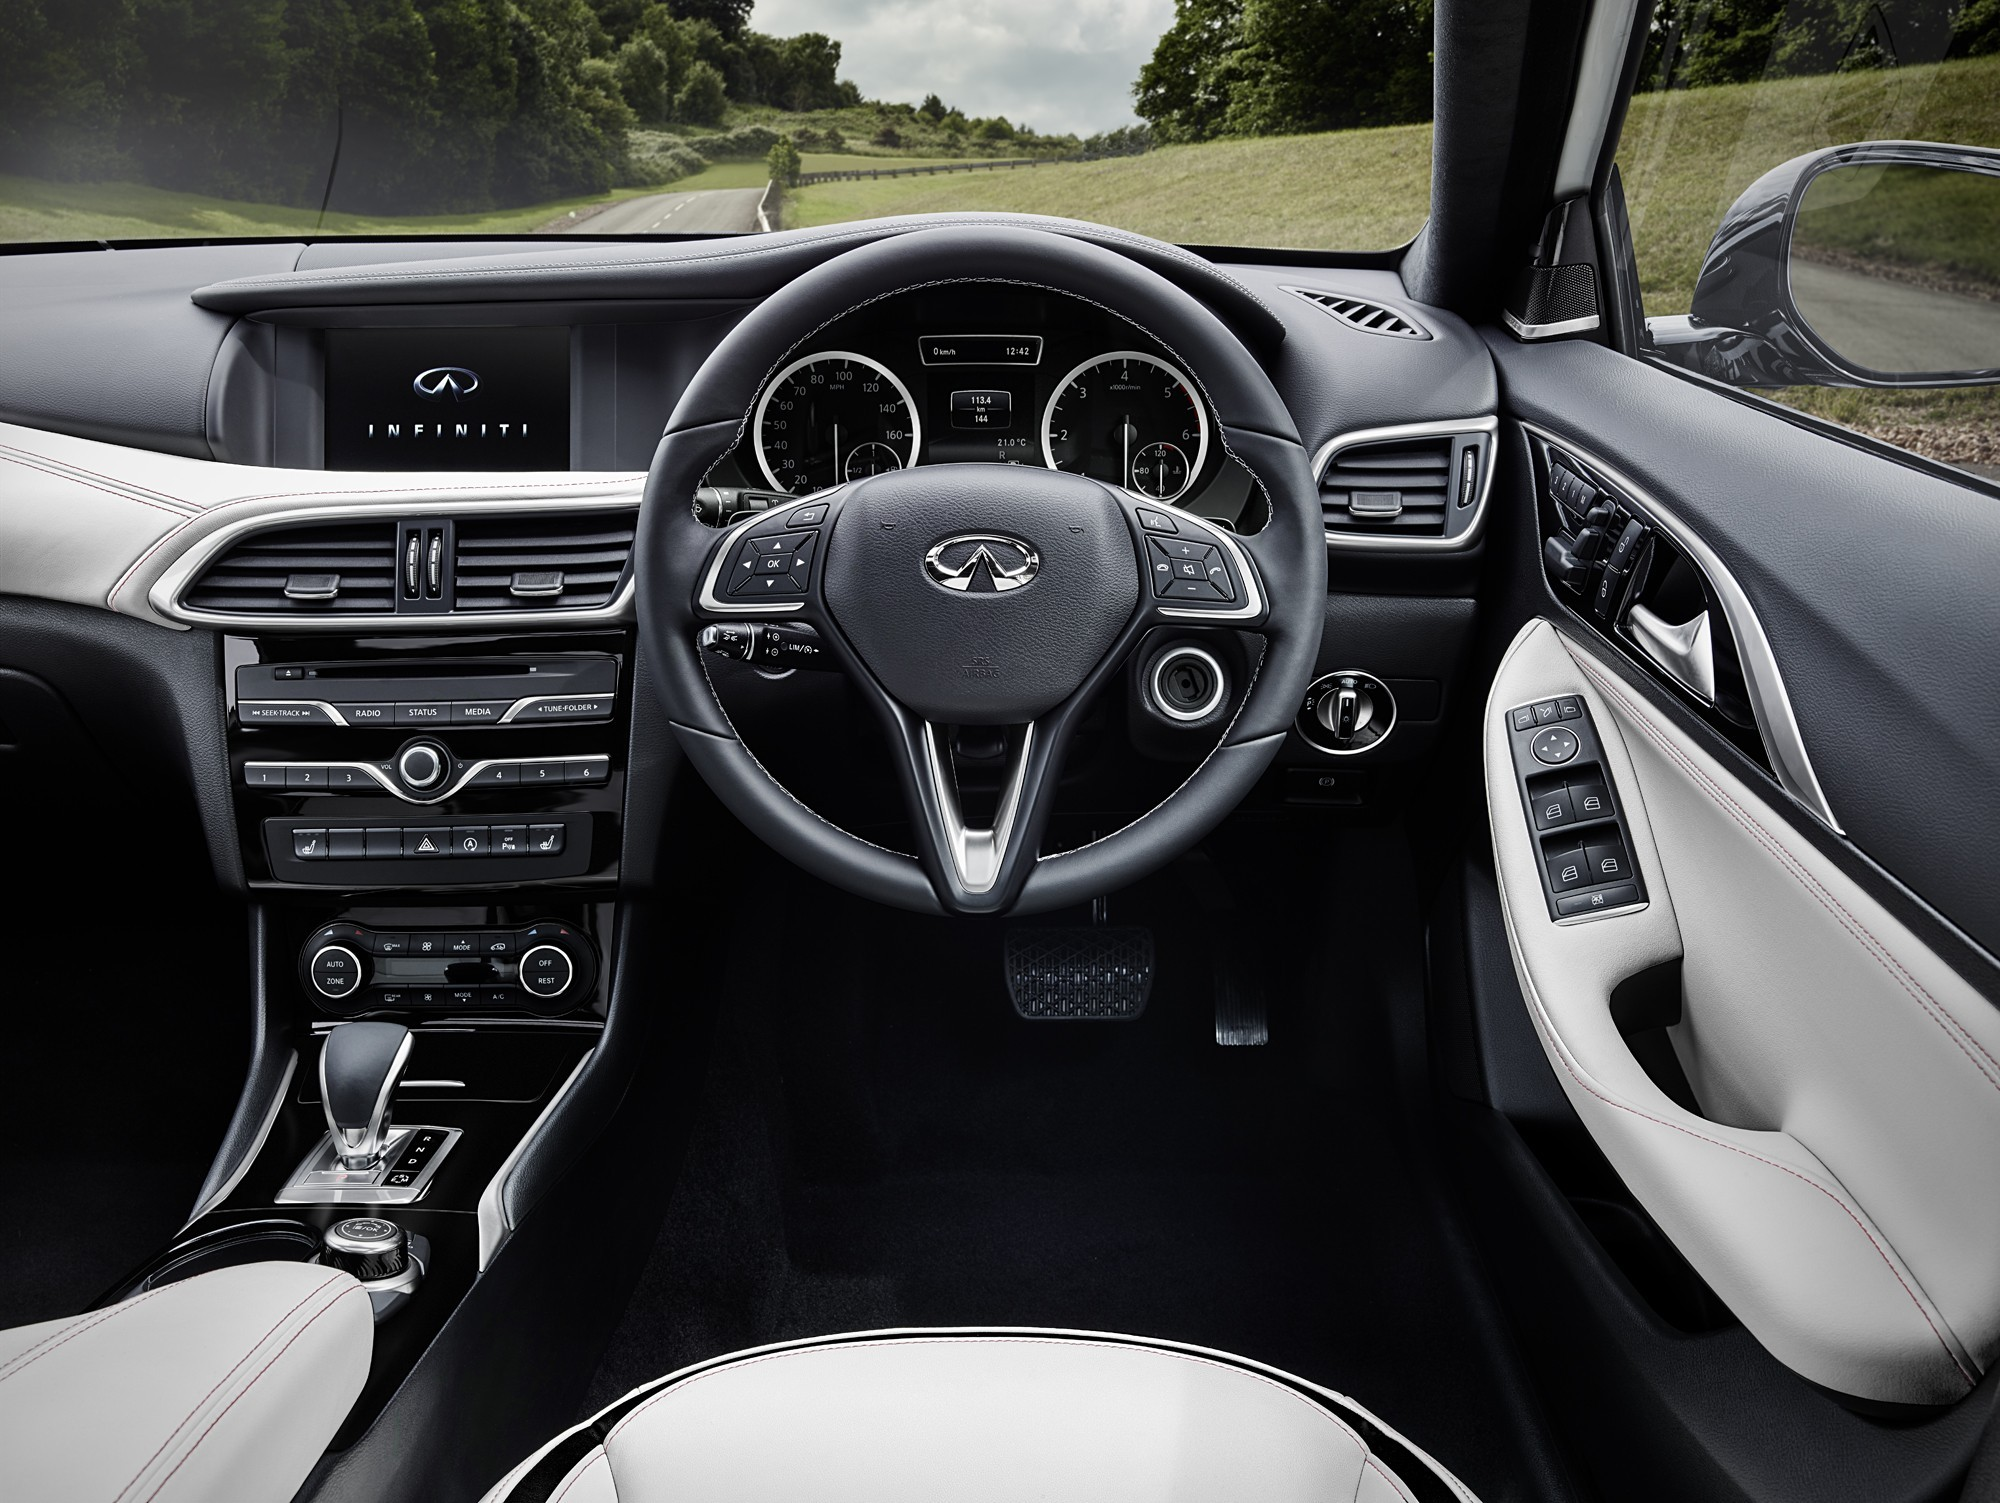 infiniti-reveals-q30-interior-it-has-mercedes-benz-written-all-over-it_2